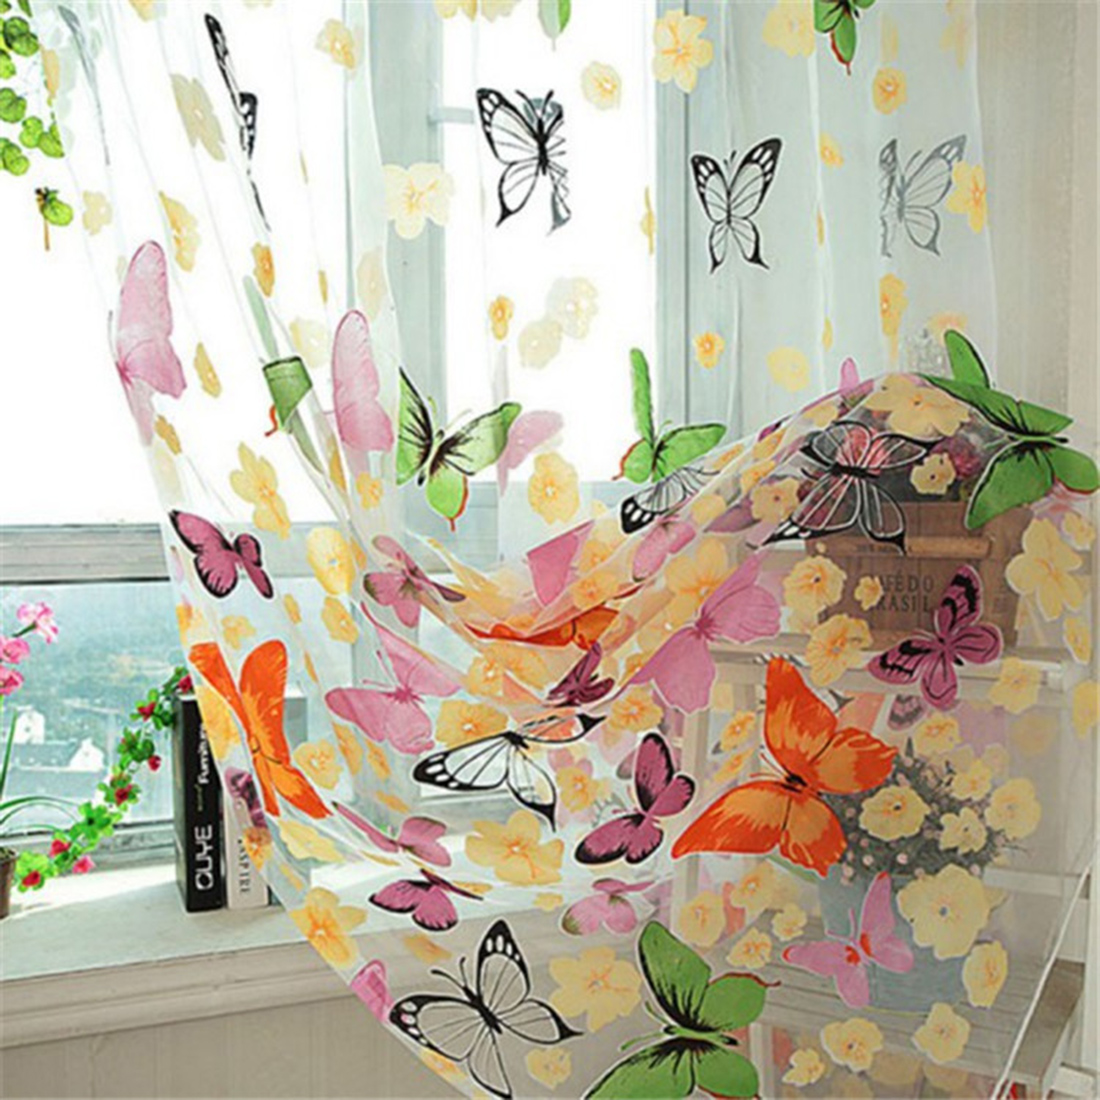 100cm X 200cm Butterfly Print Sheer Window Panel Curtains Room Divider New For Living Room Bedroom Decoration